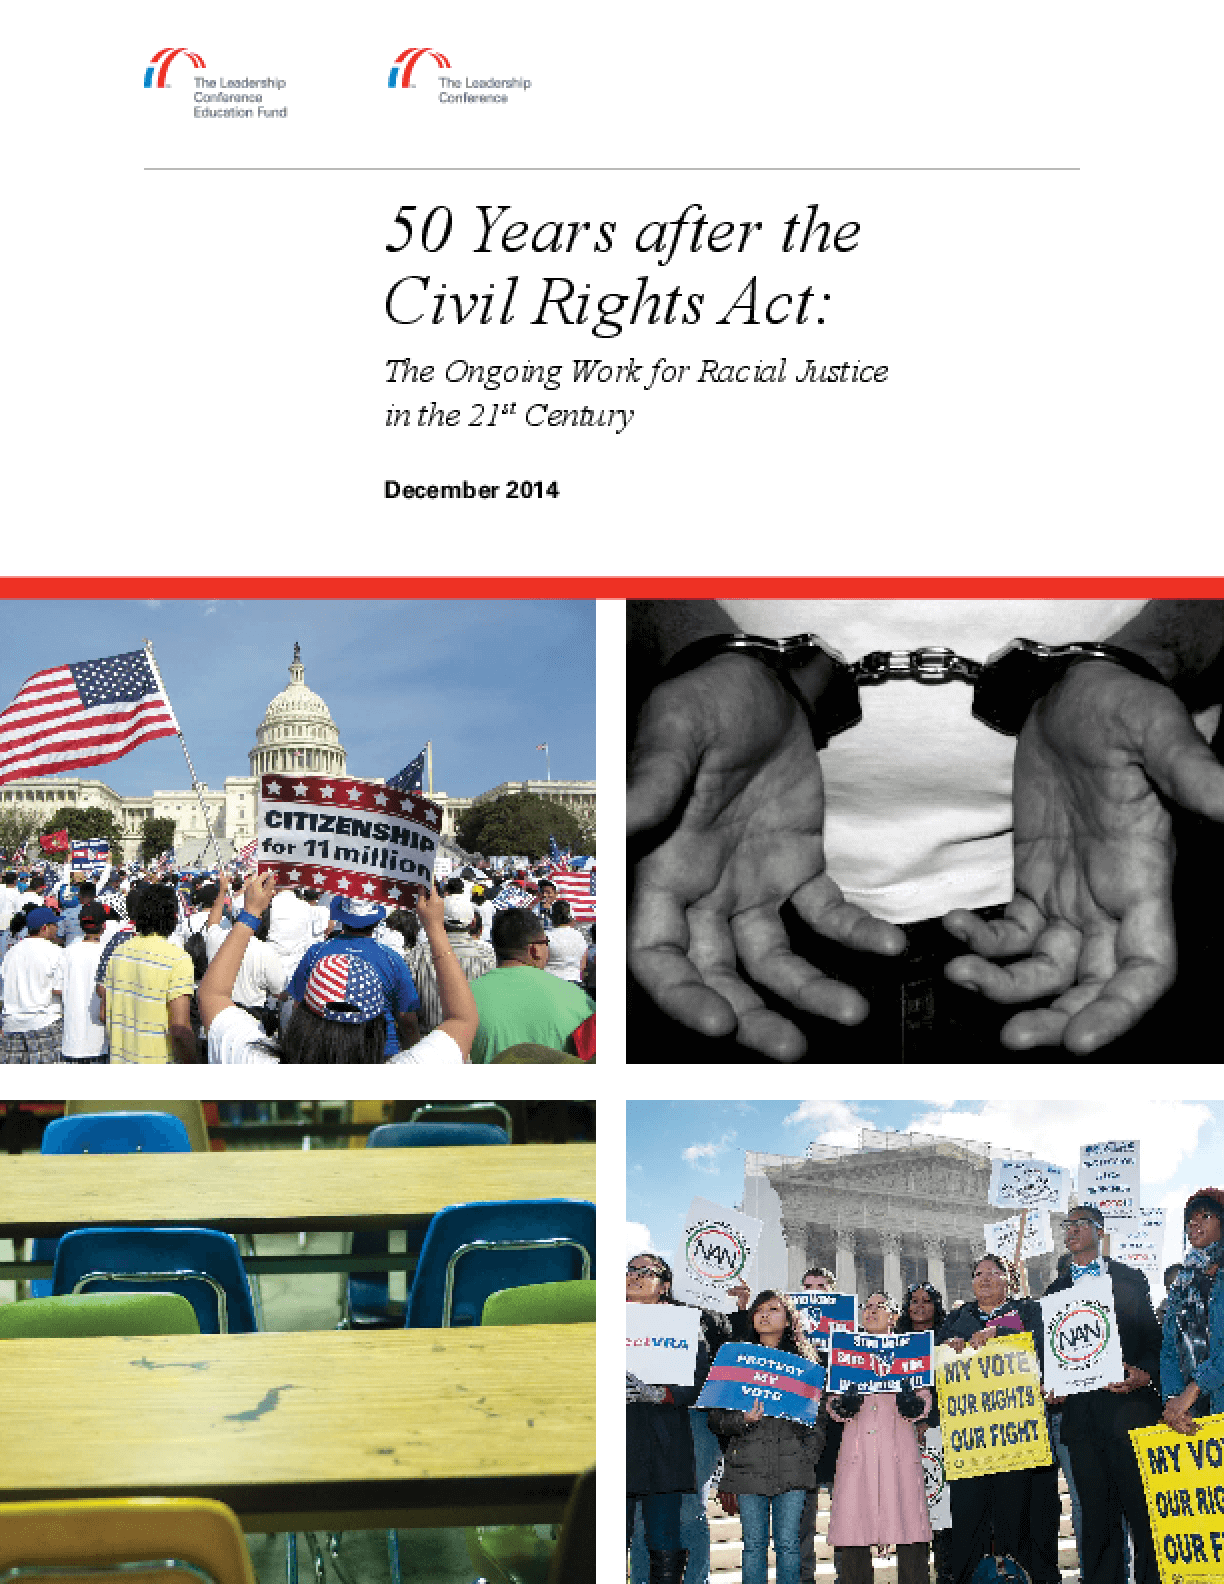 50 Years after the Civil Rights Act: The Ongoing Work for Racial Justice in the 21st Century